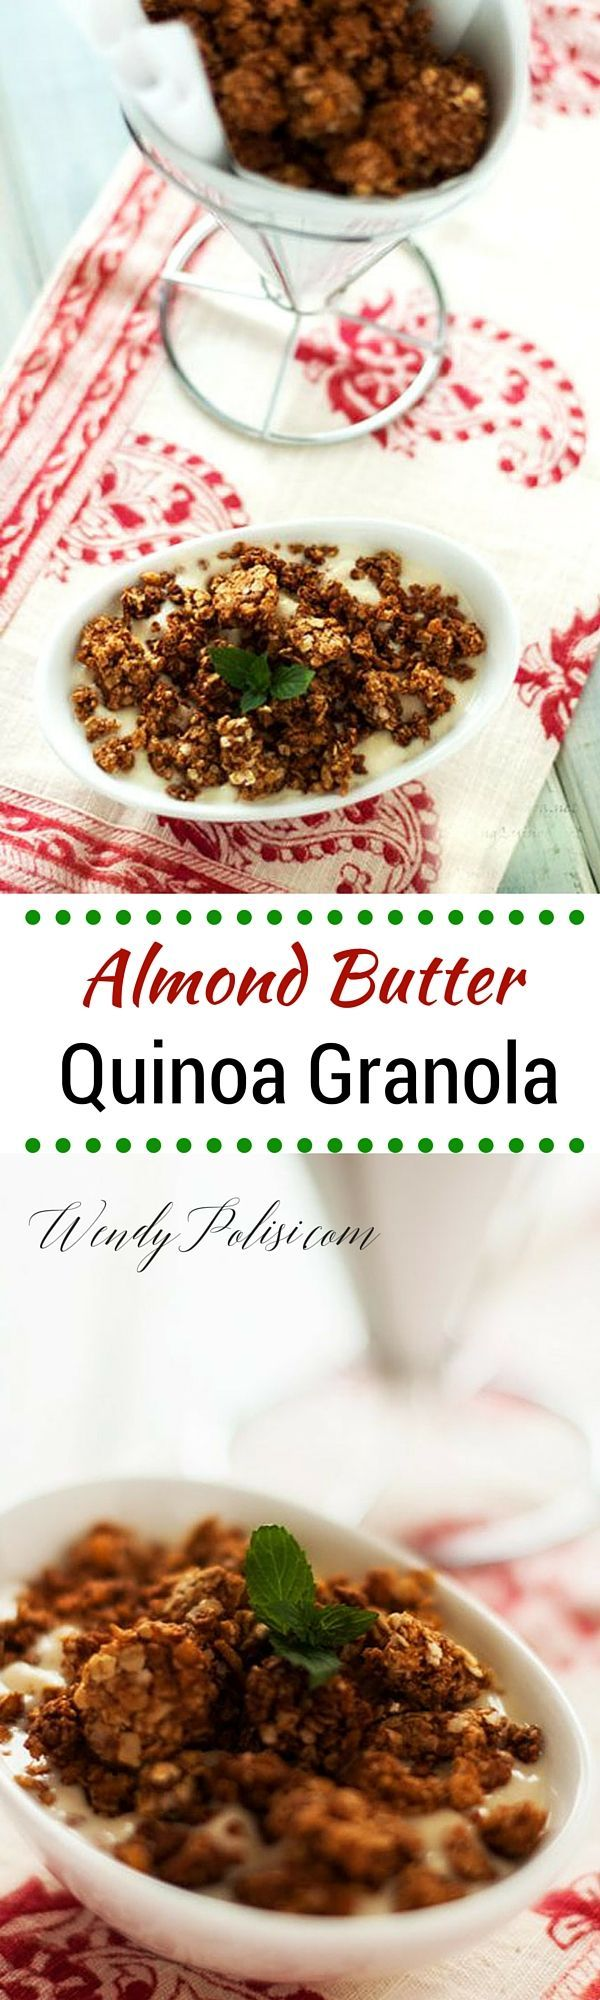 Almond Butter Quinoa Granola - This gluten free and vegan granola is the perfect healthy way to start your day!  PLUS --> Learn how you can score a jar of Justin's Almond Butter Free!